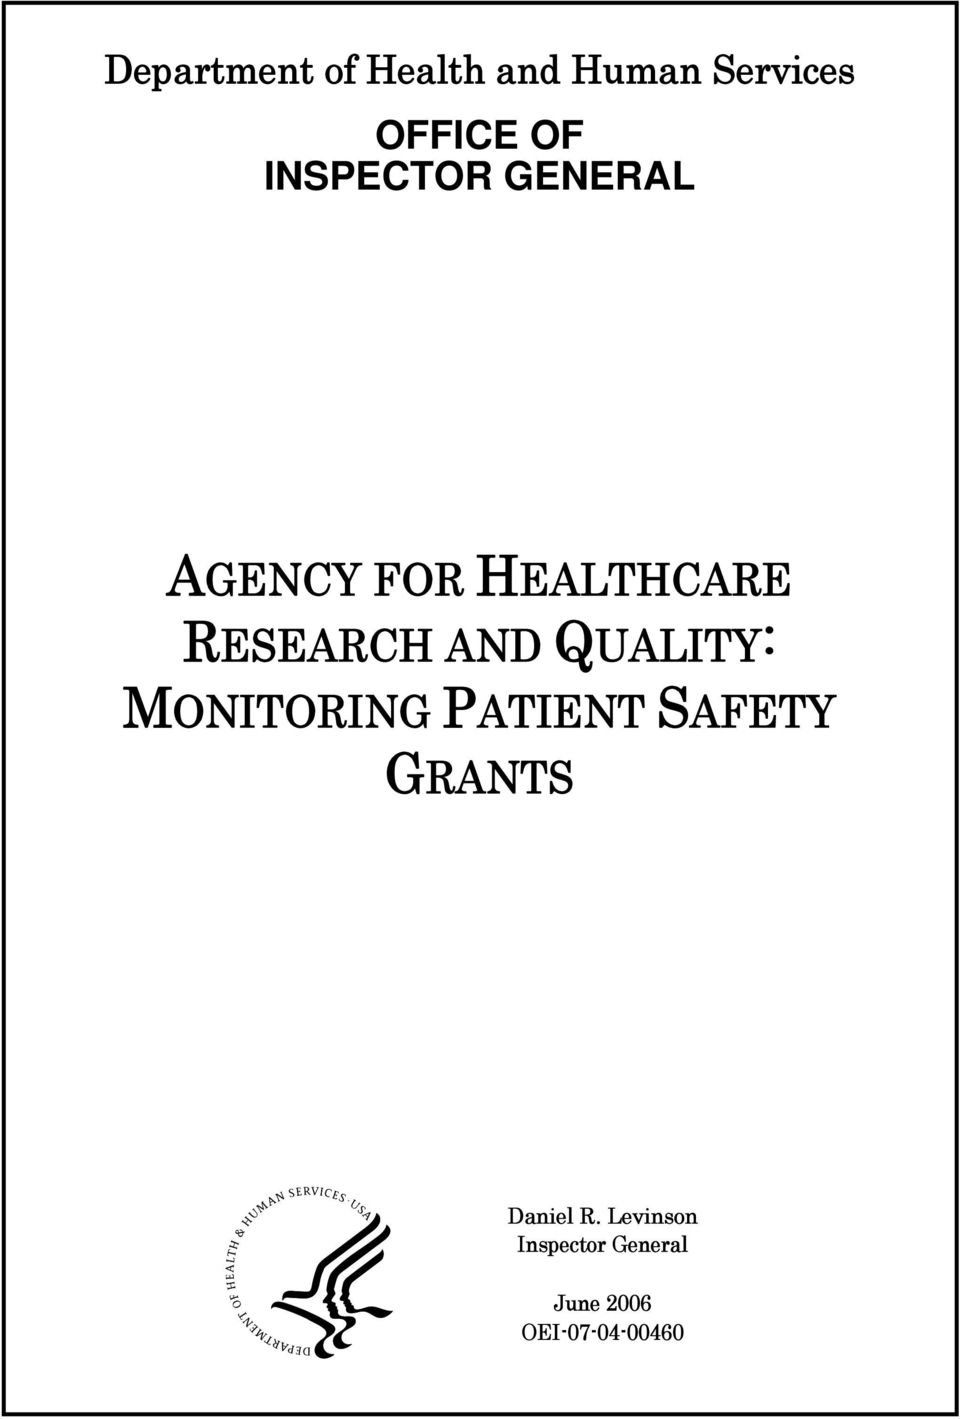 AND QUALITY: MONITORING PATIENT SAFETY GRANTS